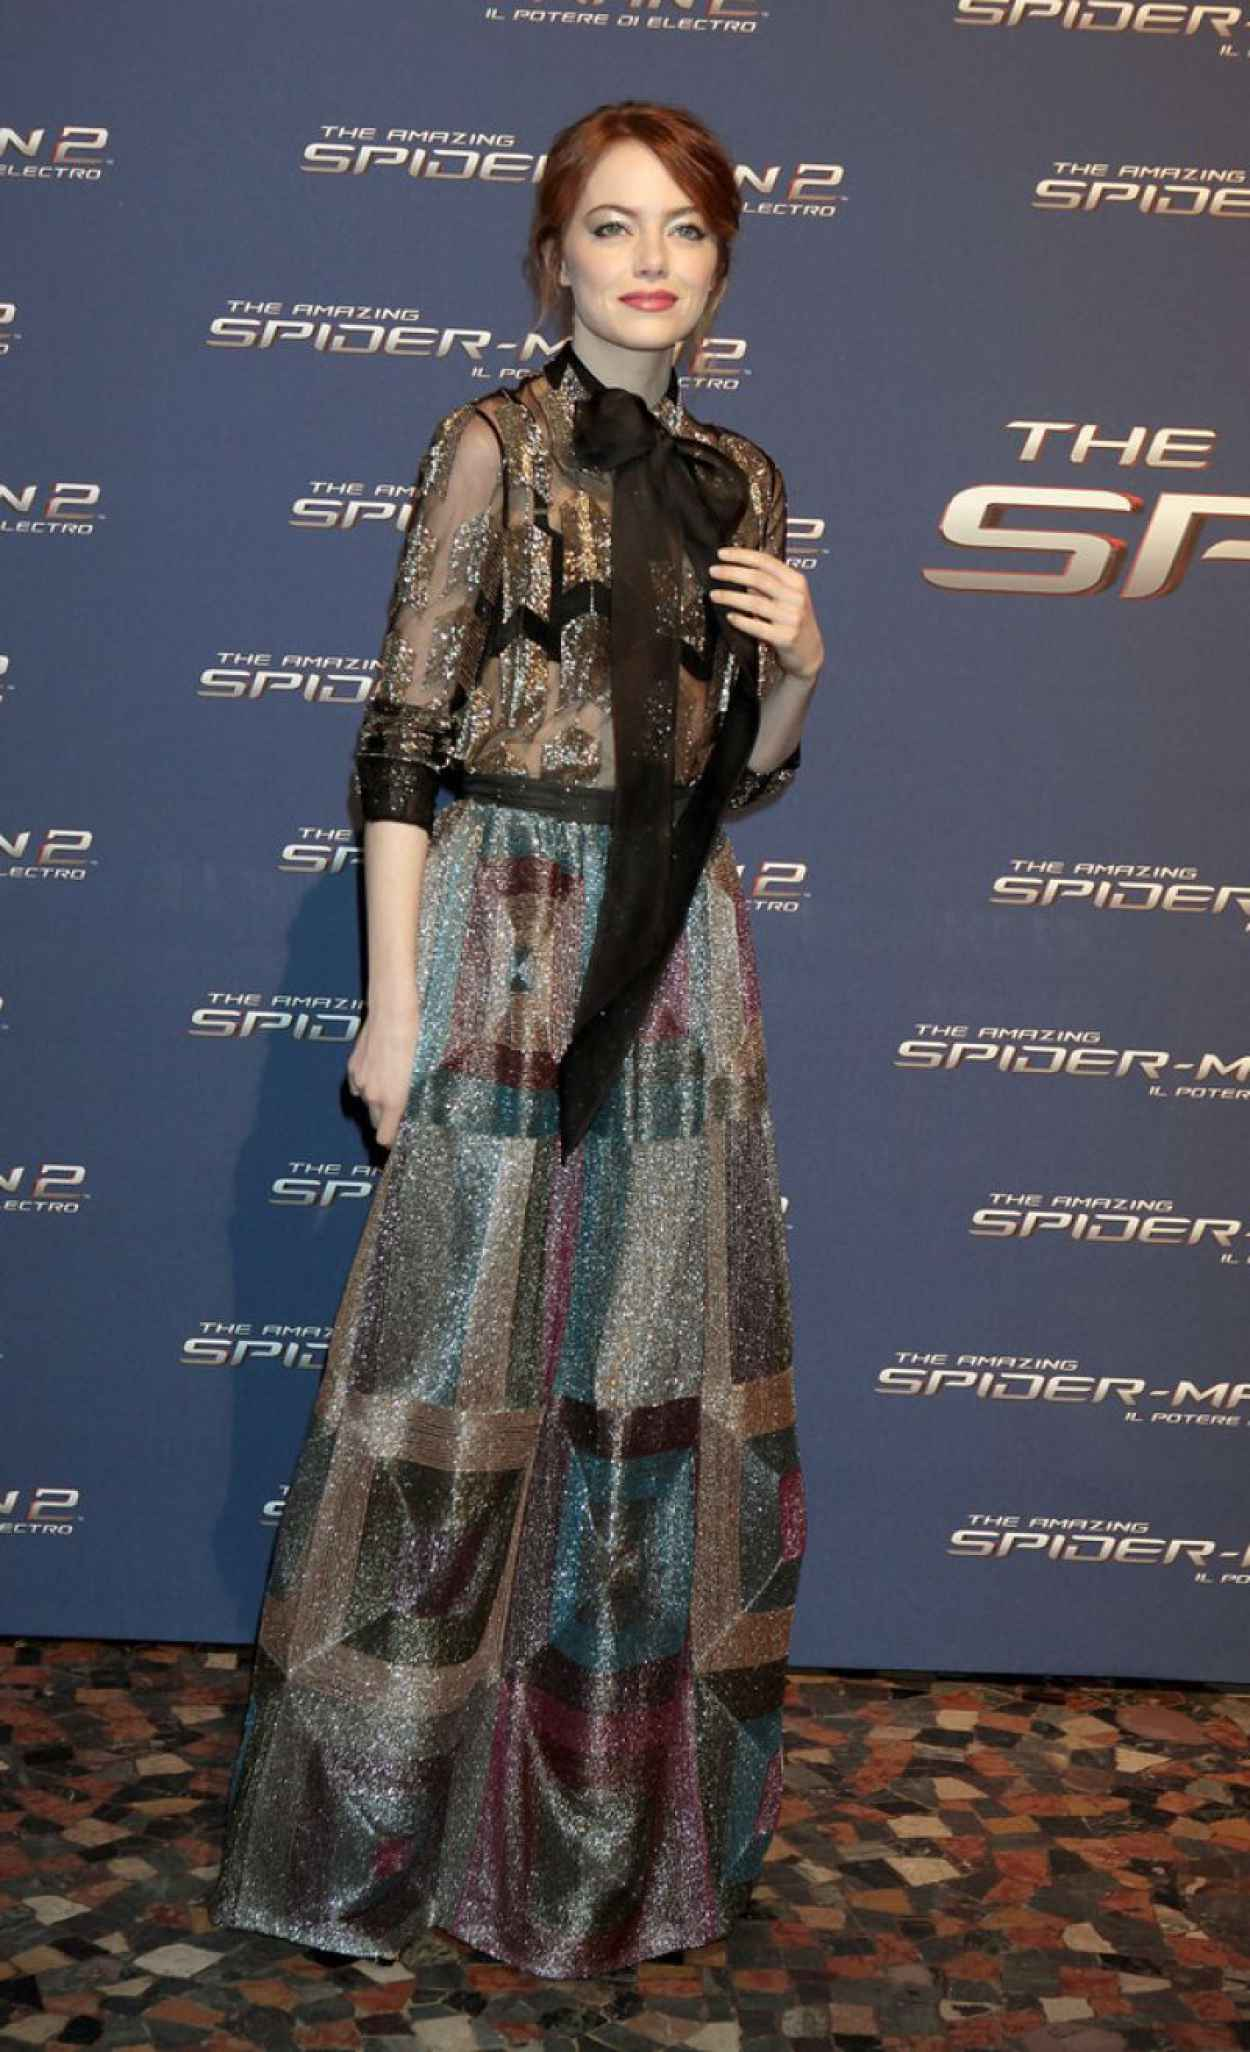 Emma Stone Wearing Valentino - The Amazing Spider-Man 2 Premiere in Rome-1